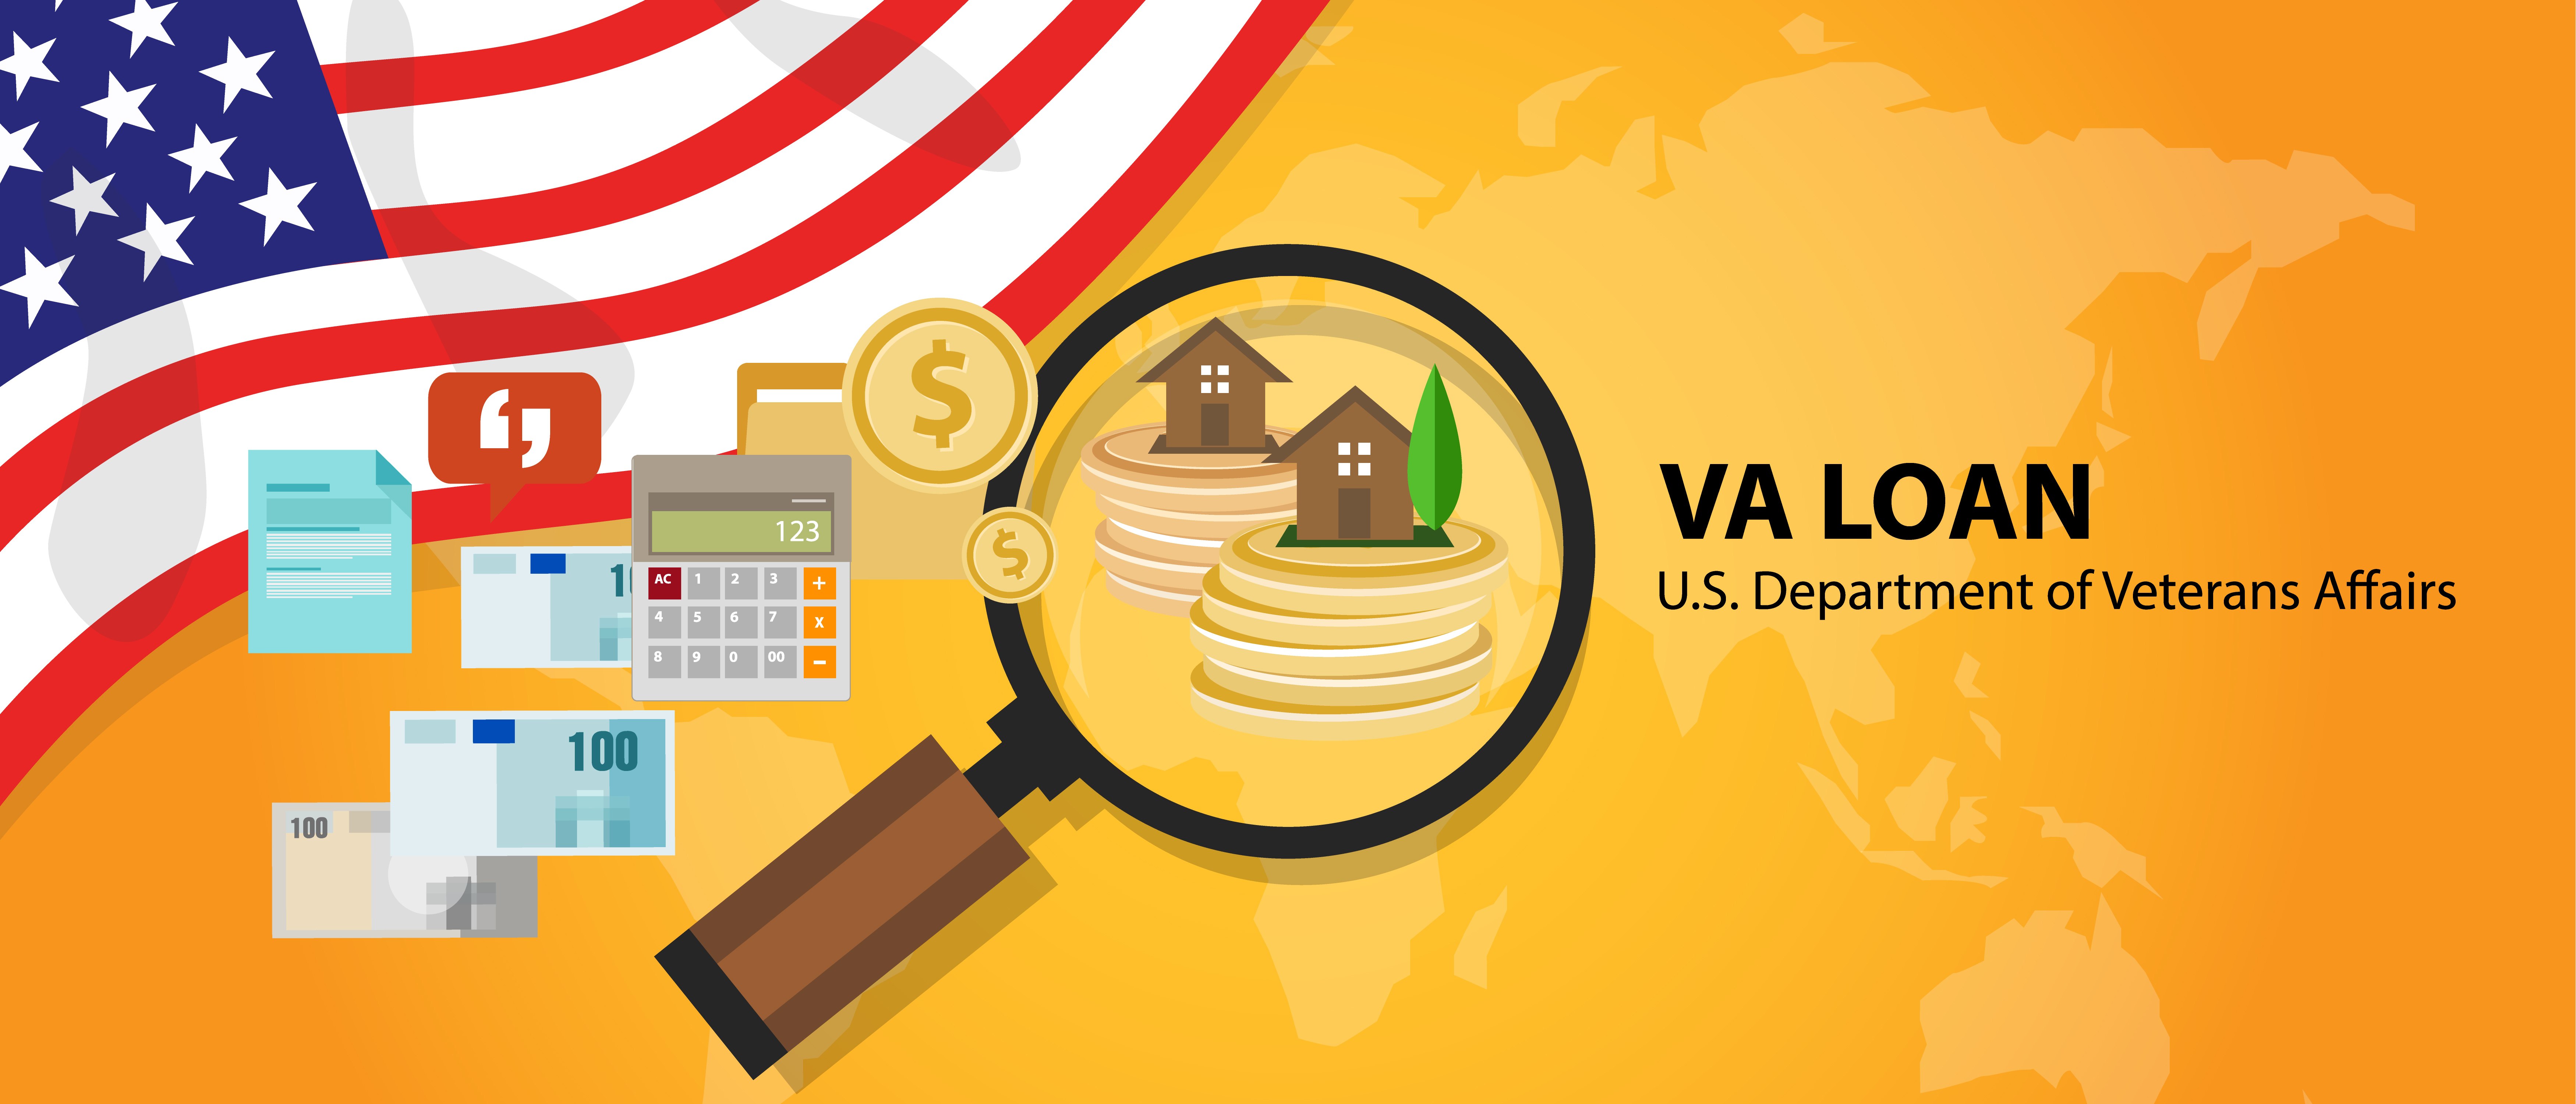 Va loans hawaii starts here all recipients of a va loan must first obtain a certificate of eligibility coe a formal document that explains what va entitlement you possess xflitez Choice Image